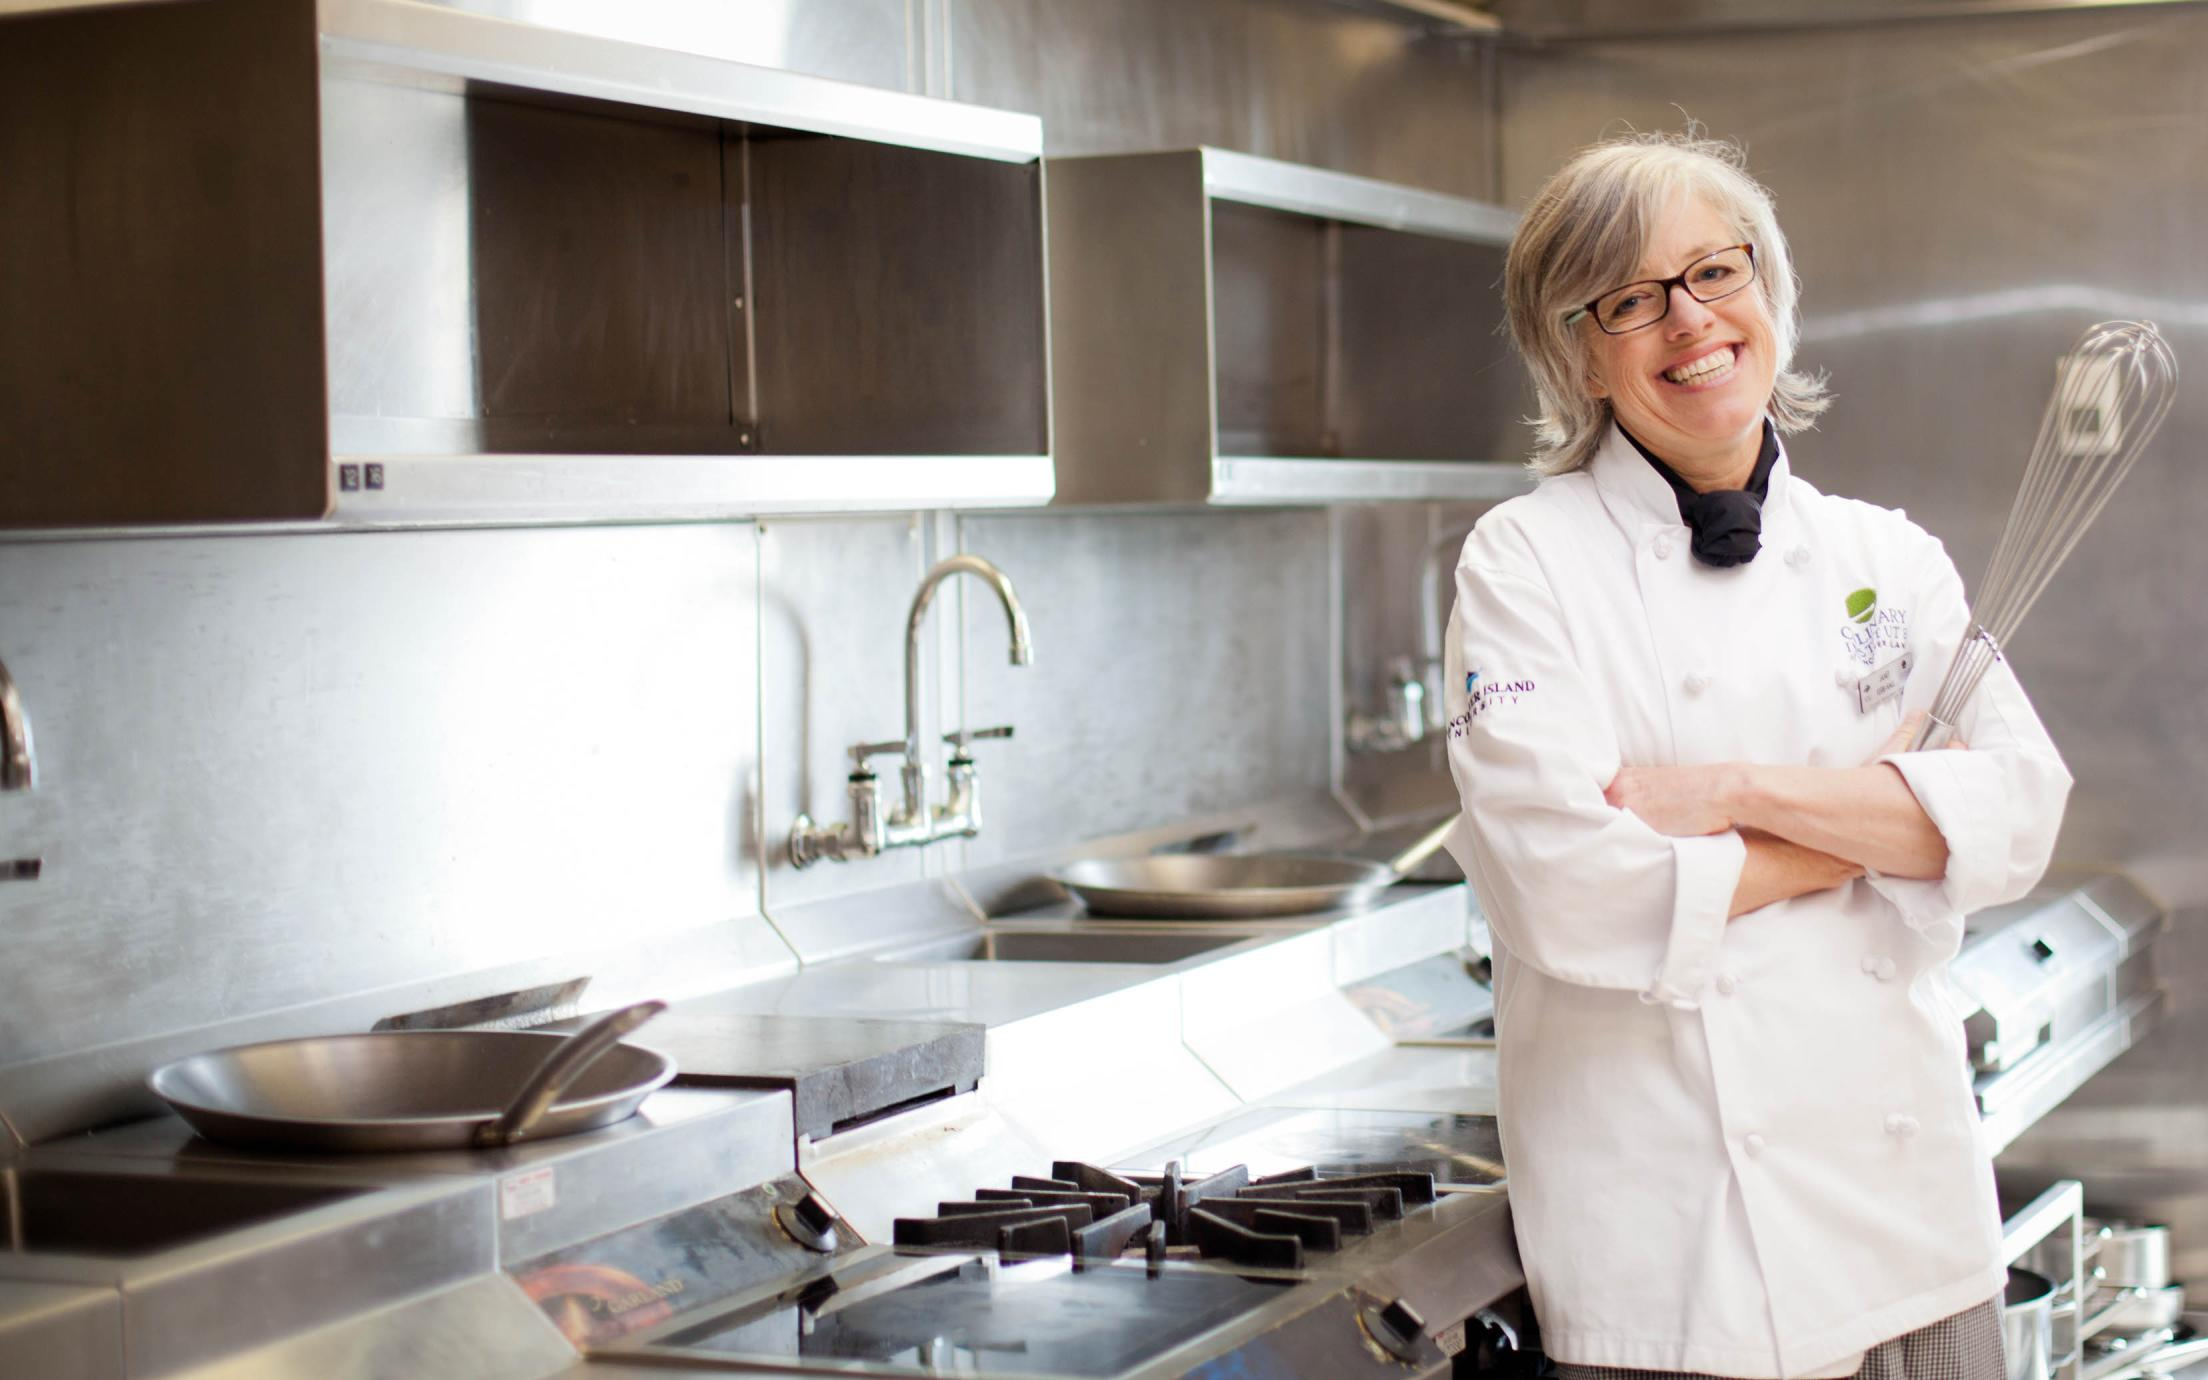 Culinary Management Diploma Student, Janet Kerr-Hall